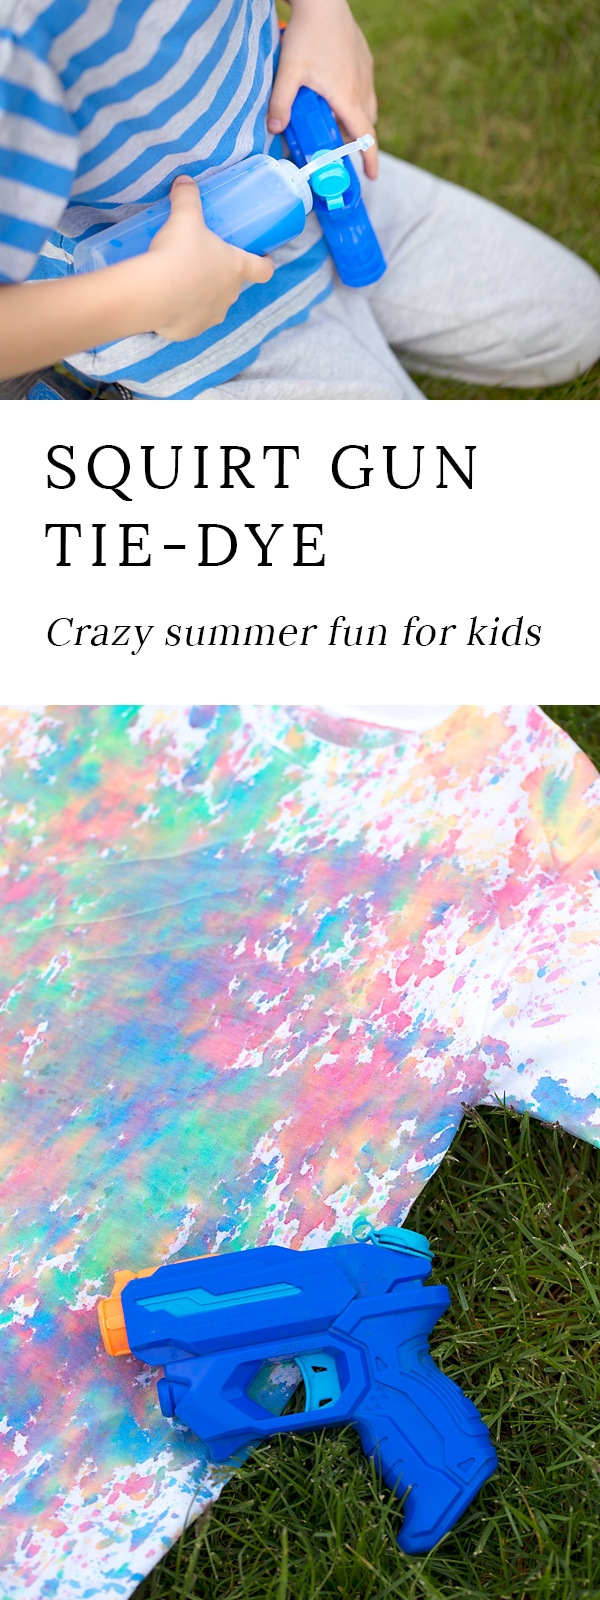 Get ready for some crazy summer fun! Kids of all ages will enjoy using squirt guns to create bold, tie-dyed t-shirts.